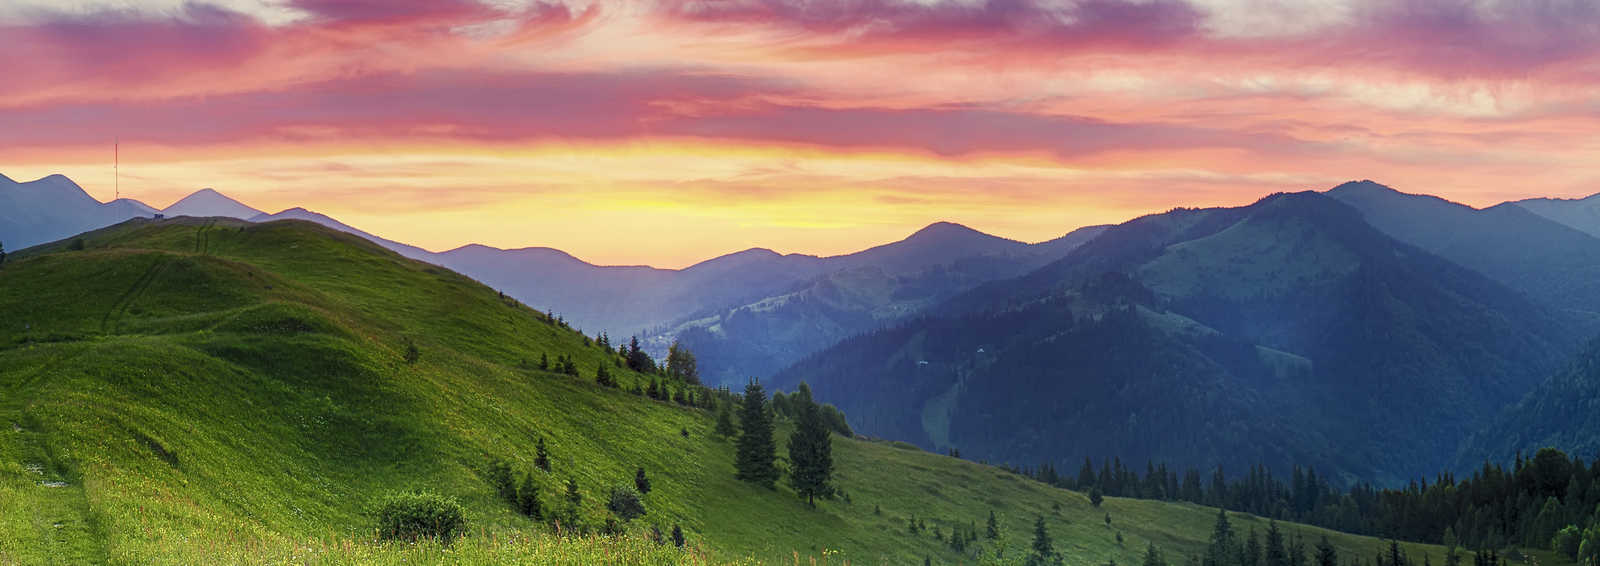 Carpathian mountains summer sunset landscape with dramatic sky and blue mountains